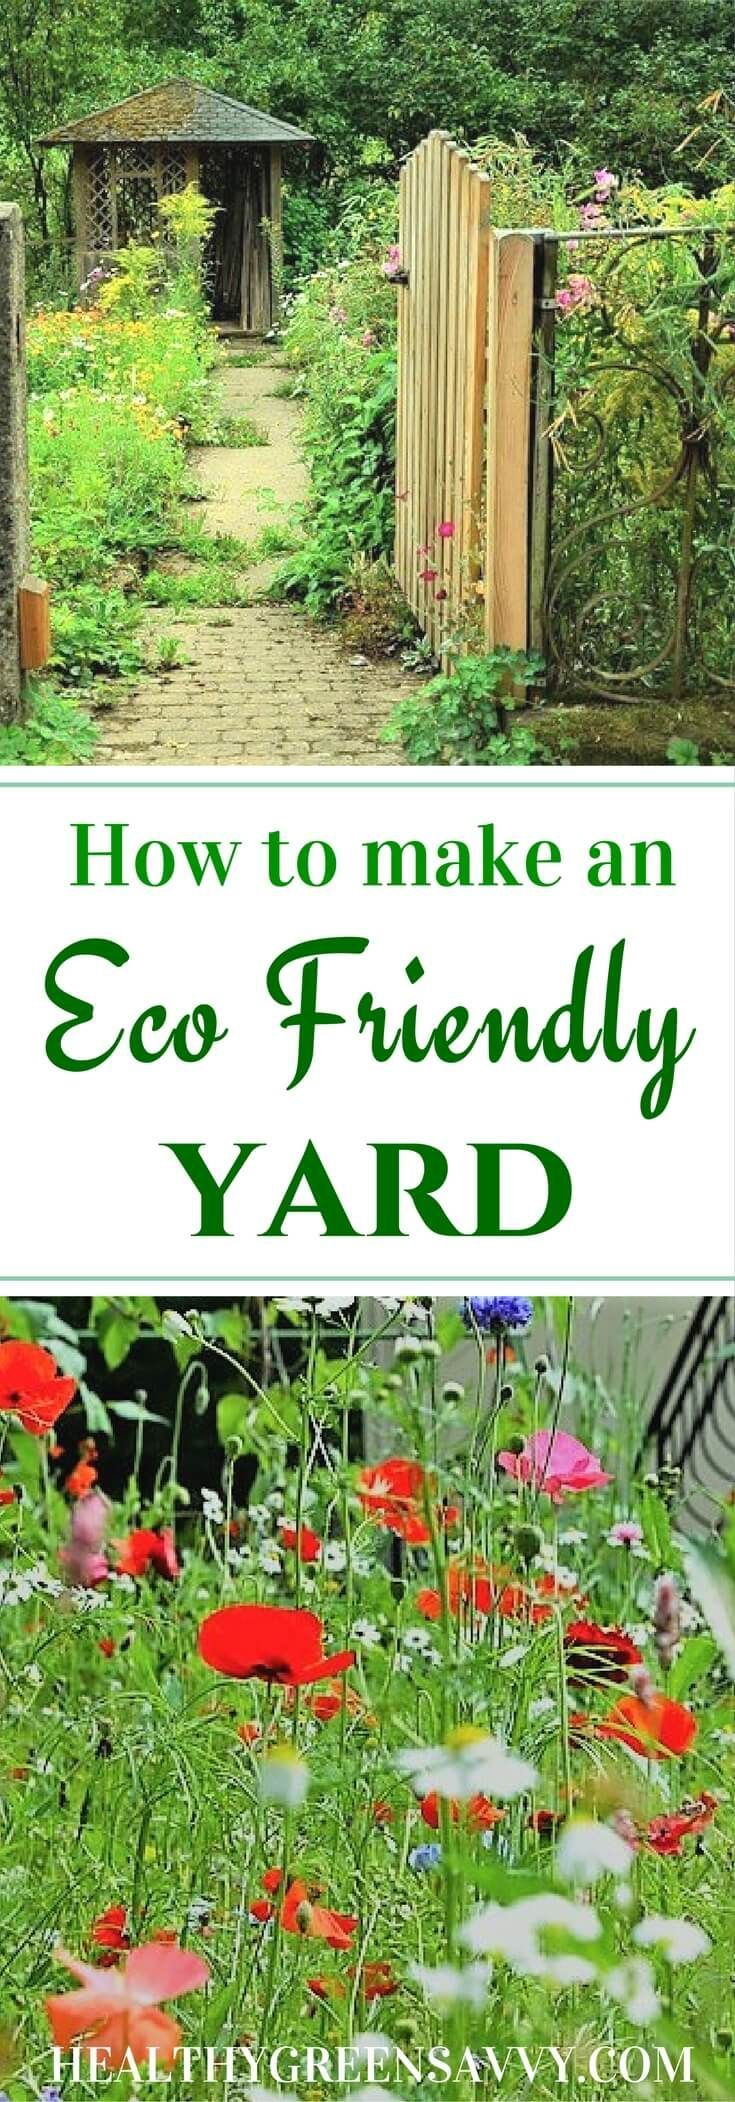 Eco friendly landscaping benefits you AND the planet! Save money, improve air quality, and capture carbon in your yard with these strategies. Put your yard to work for the planet!   eco friendly landscaping   gardening tips   climate change   environmentalism  